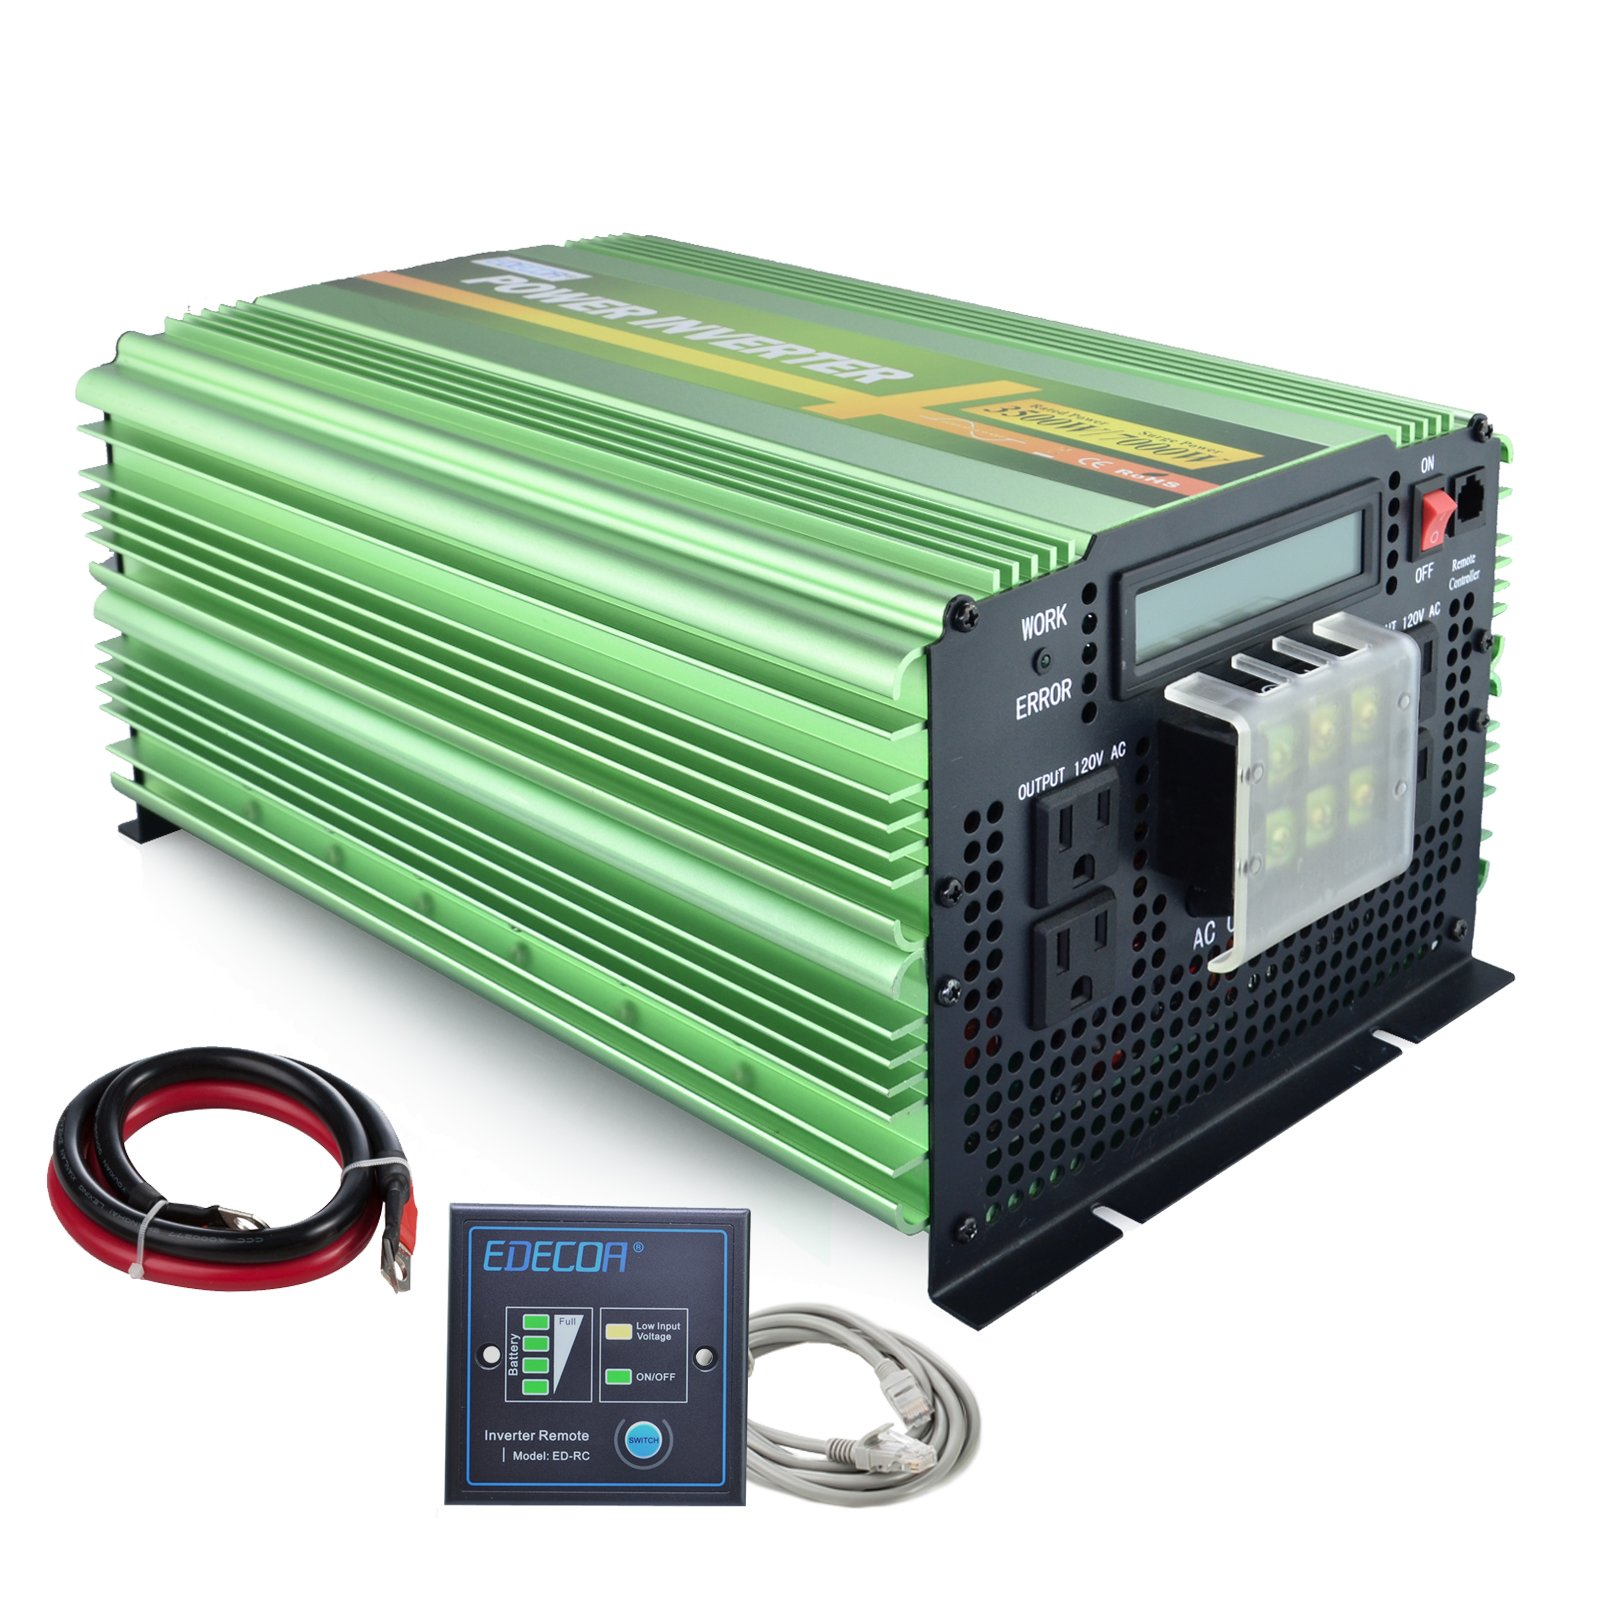 EDECOA 3500W Power Inverter Pure Sine Wave DC 12V to 110V AC with LCD Display and Remote by EDECOA